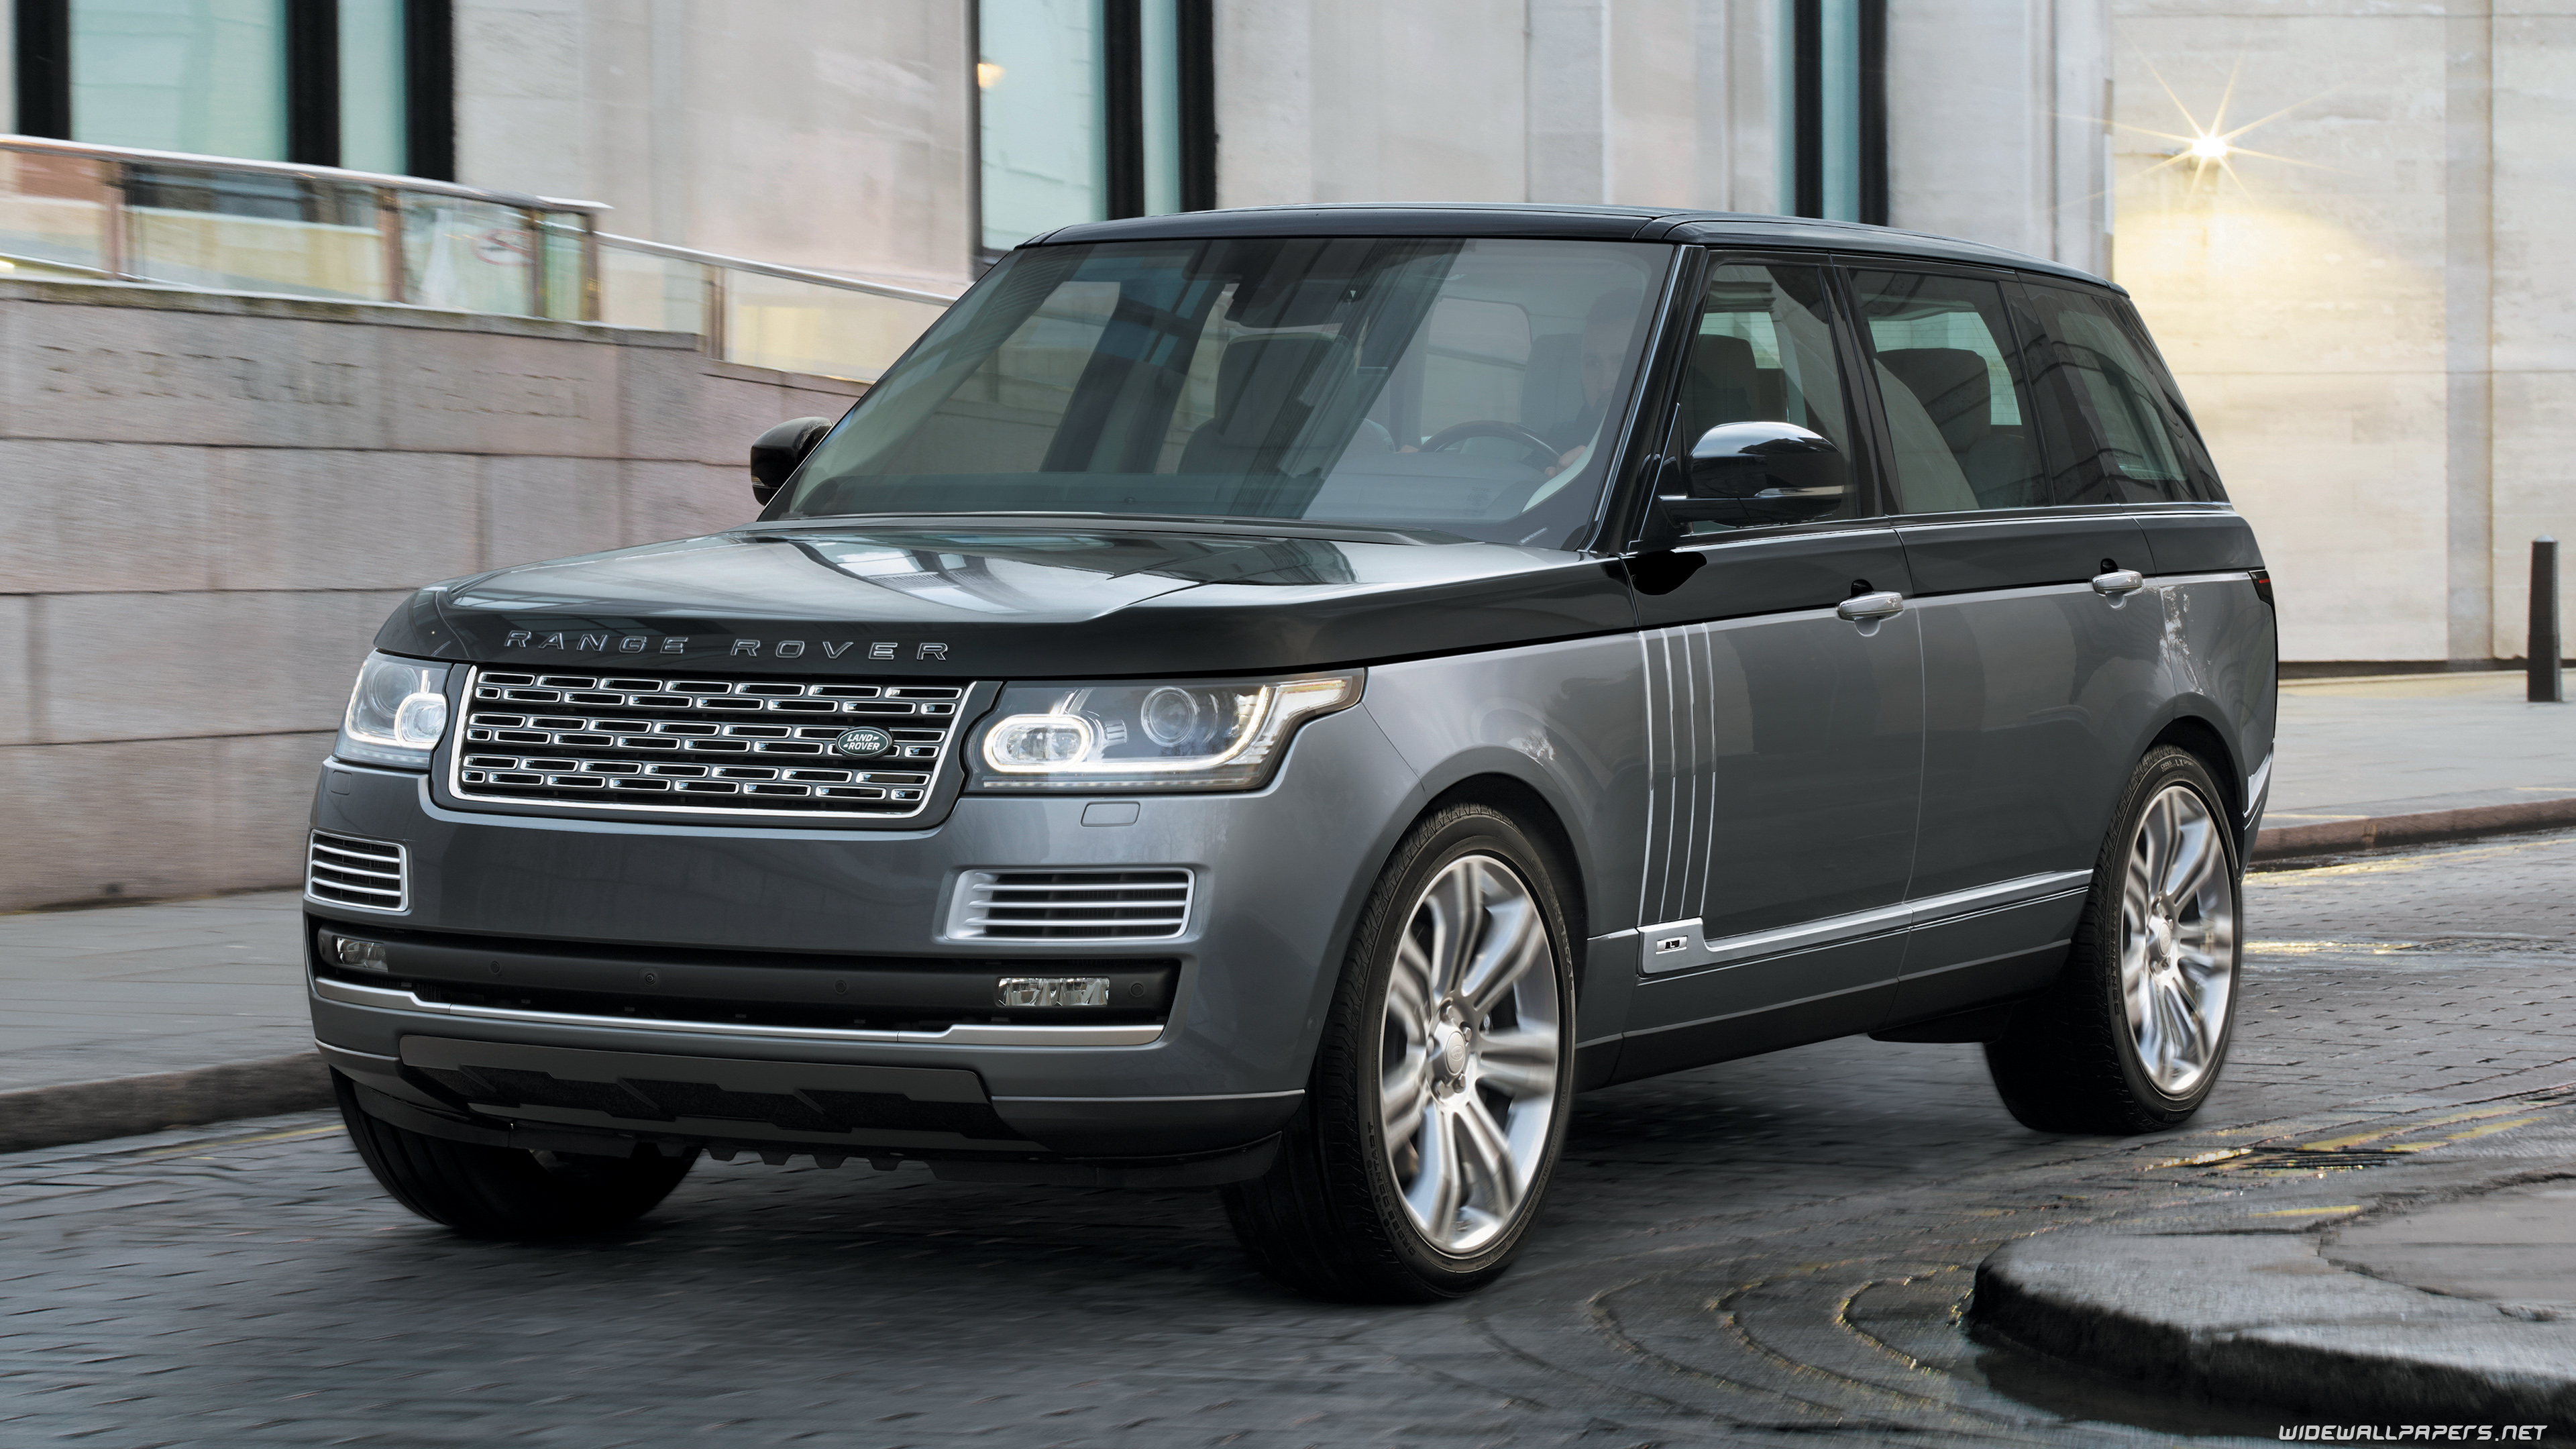 Range Rover cars desktop wallpapers 4K Ultra HD